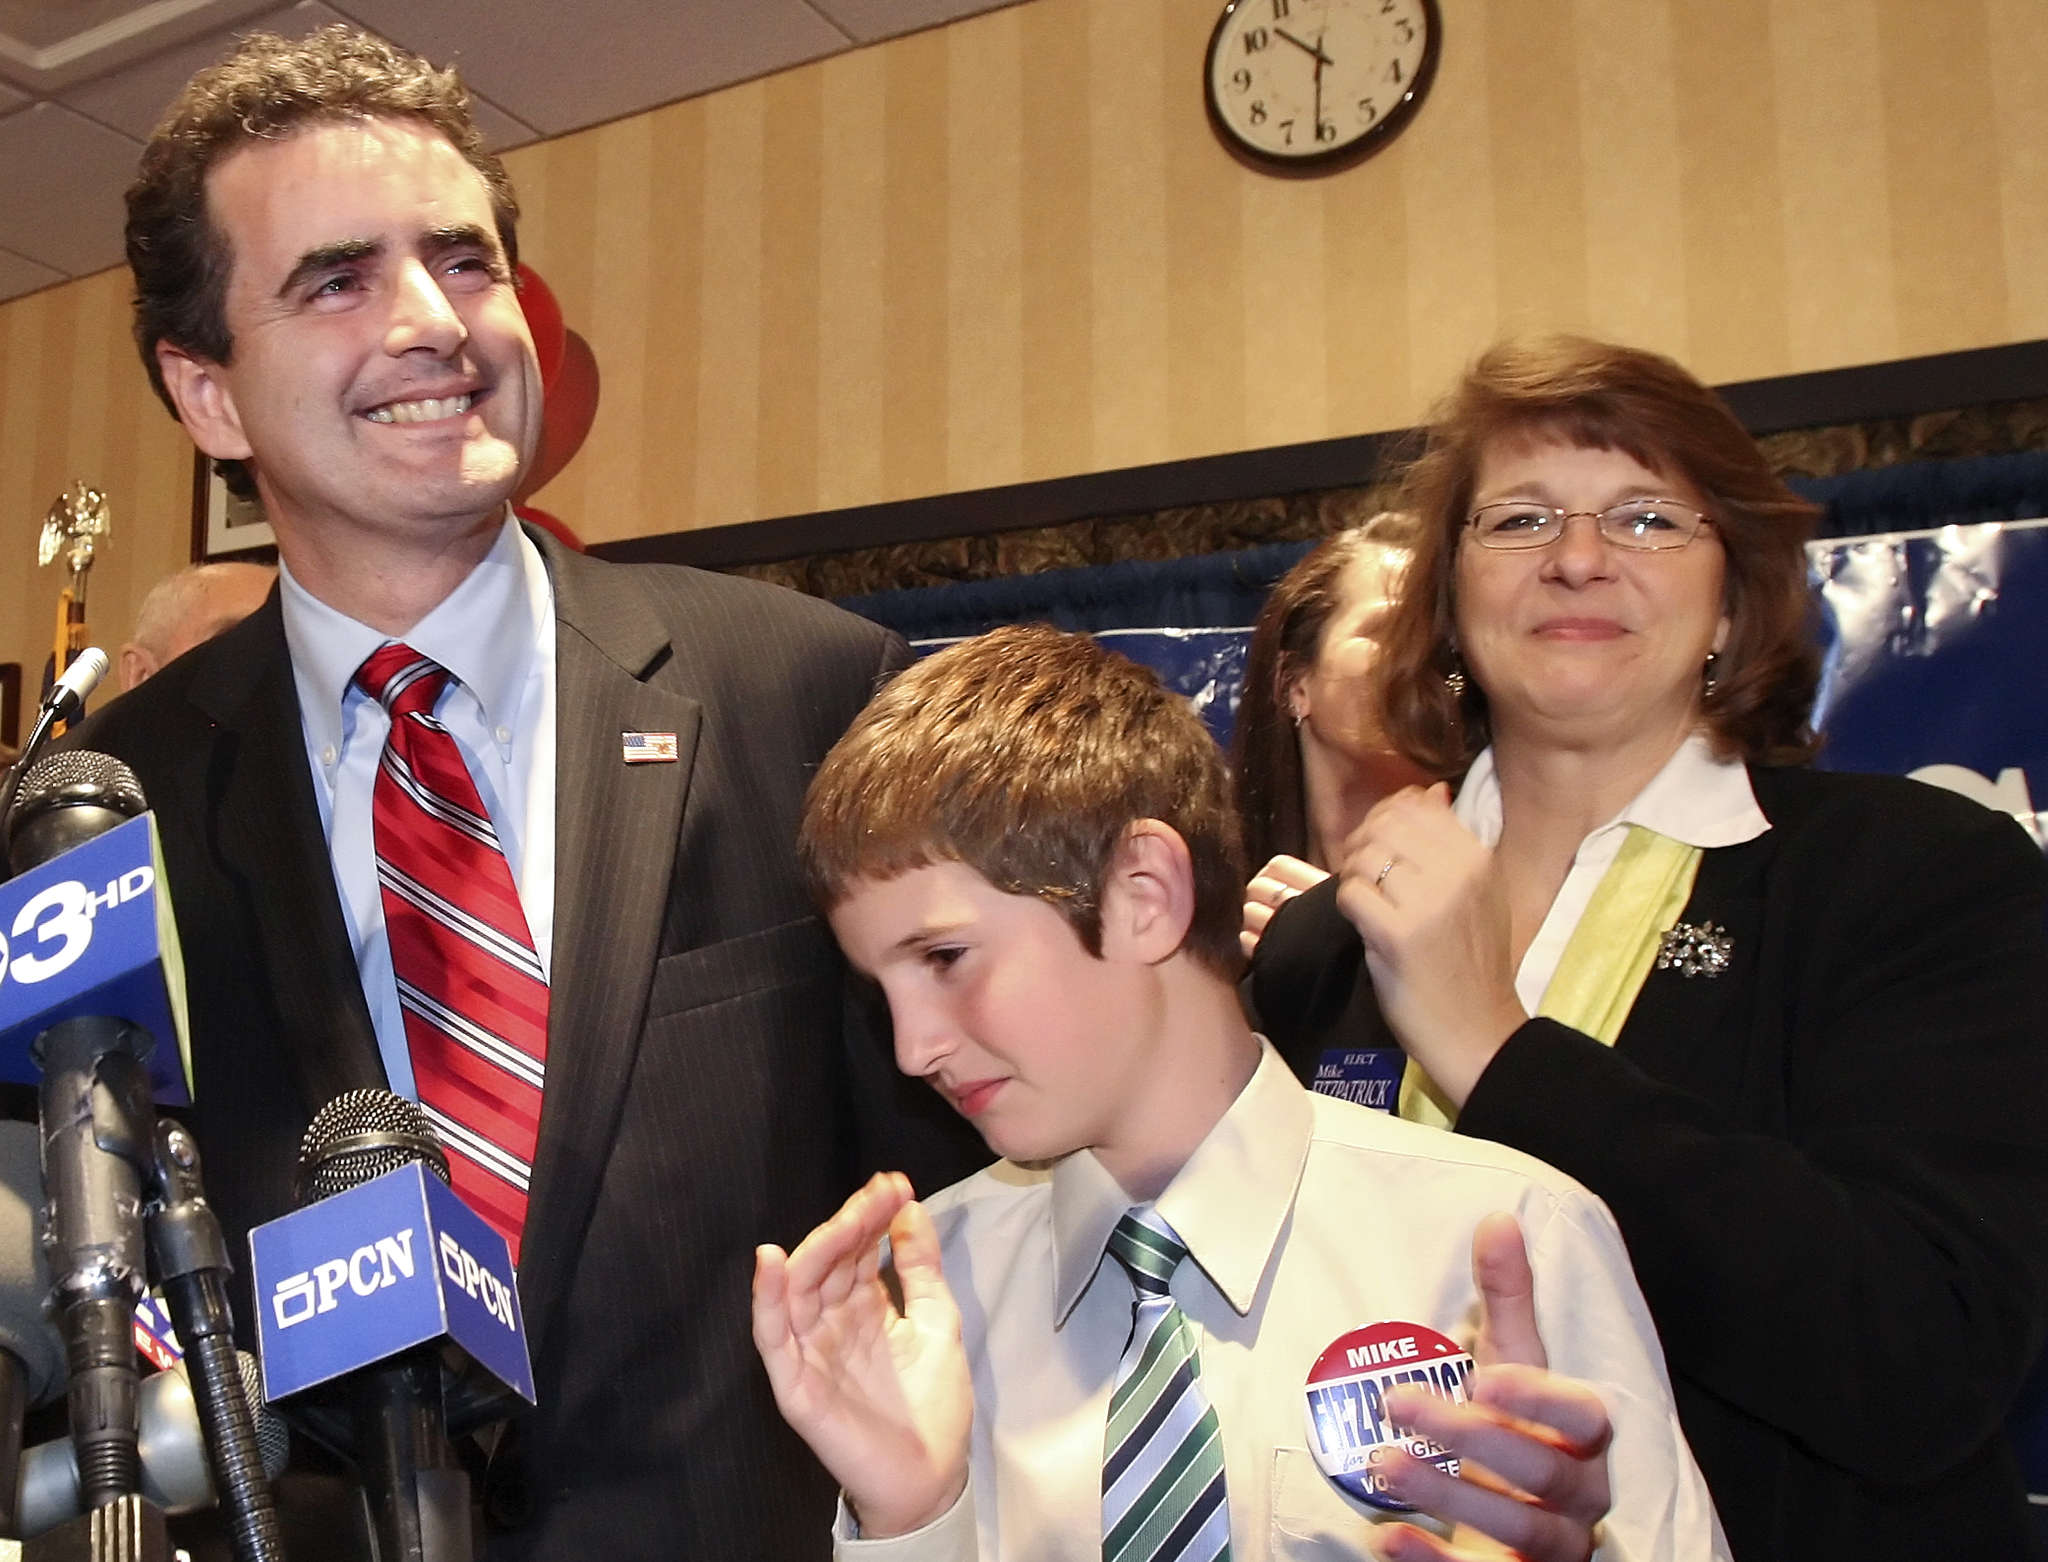 U.S. Rep. Mike Fitzpatrick , with his wife, Kathy, and son Tommy, says his concern is a constituent issue. STEVEN M. FALK / File Photo